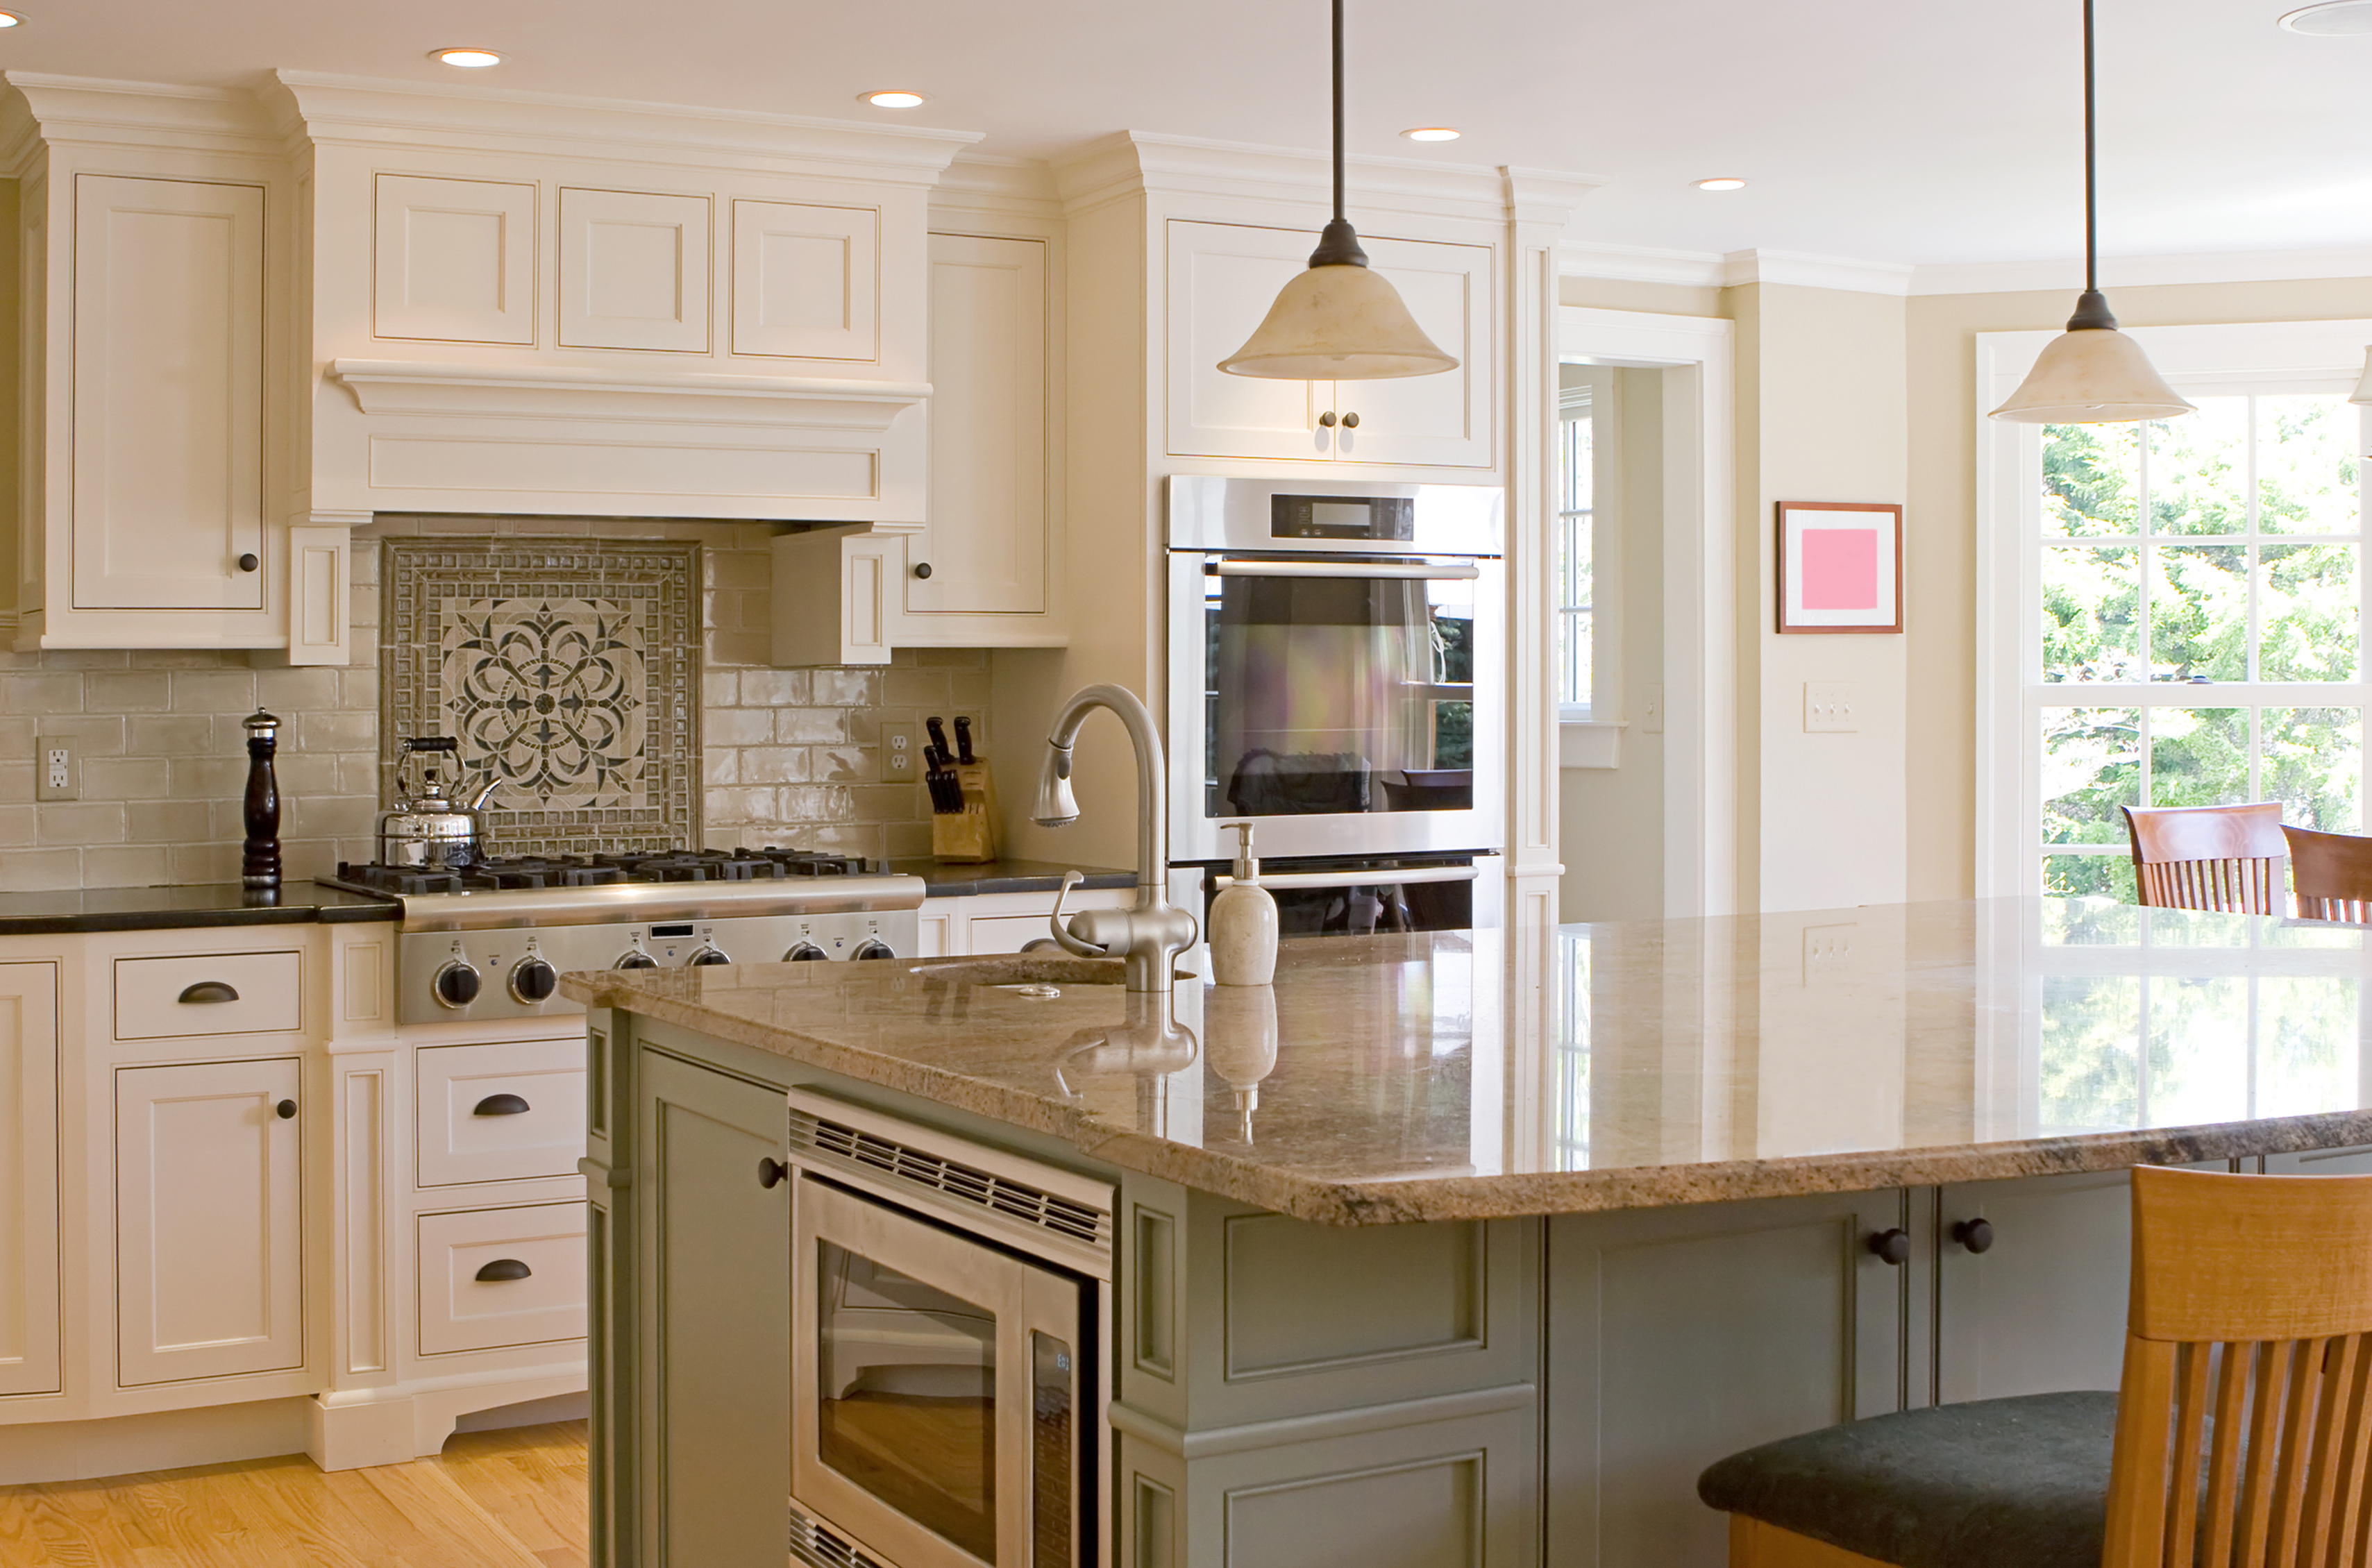 Kitchen Island Different Than Cabinets -